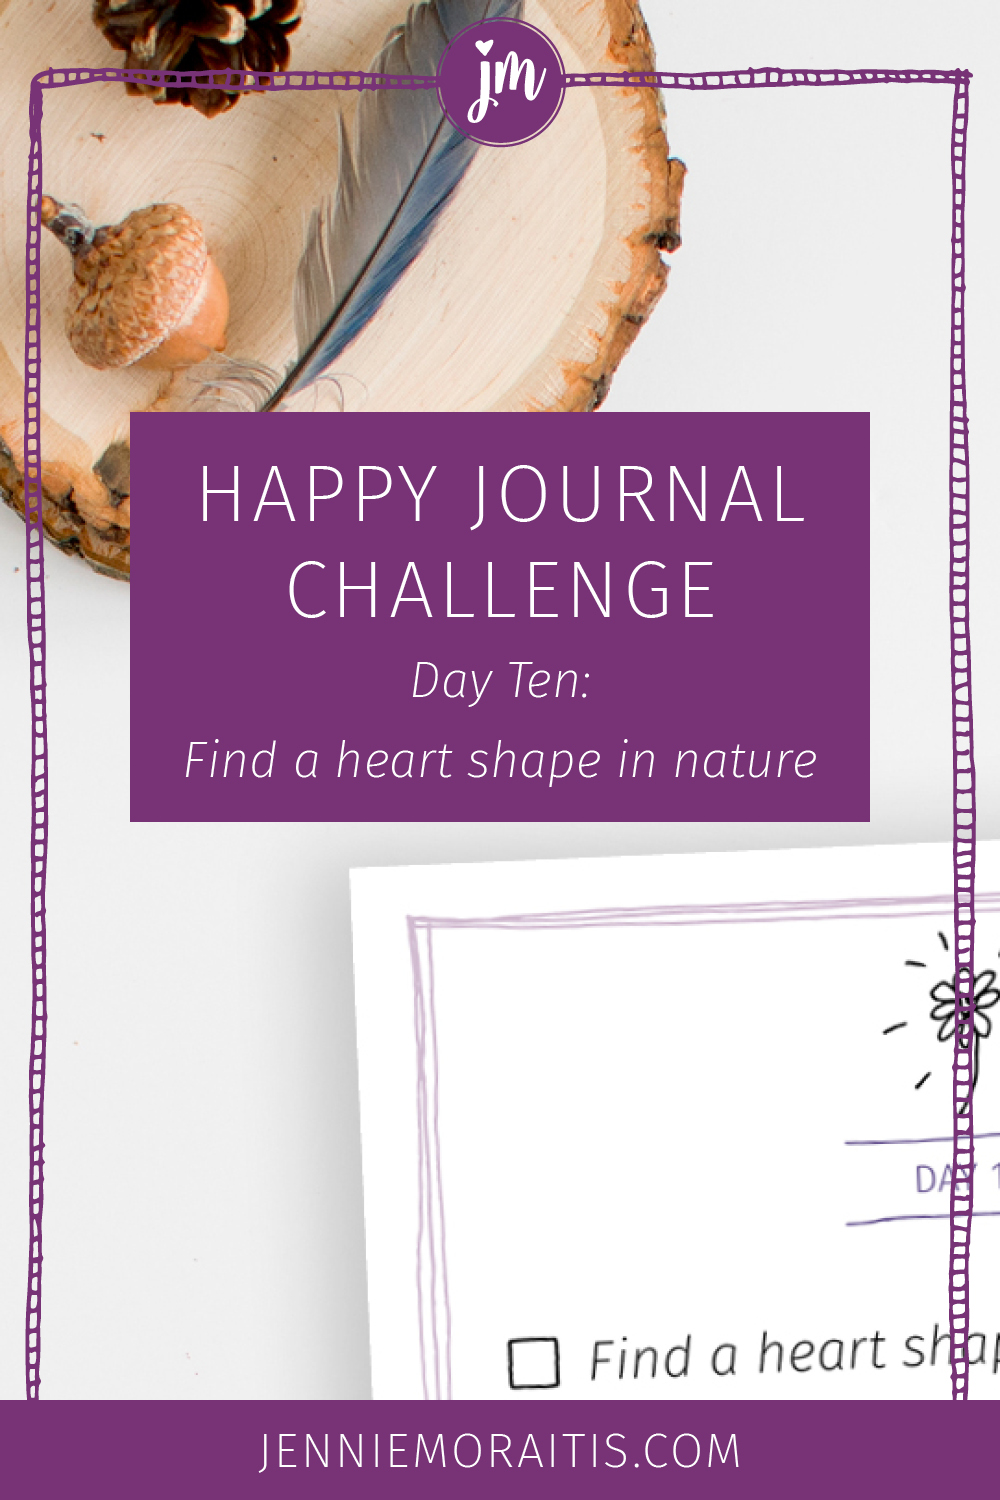 Welcome to the happy journal challenge! Grow your mindfulness and happiness muscles through this creative challenge. Today's prompt is to find a heart shape in nature. Watch the video, and get inspired. :)